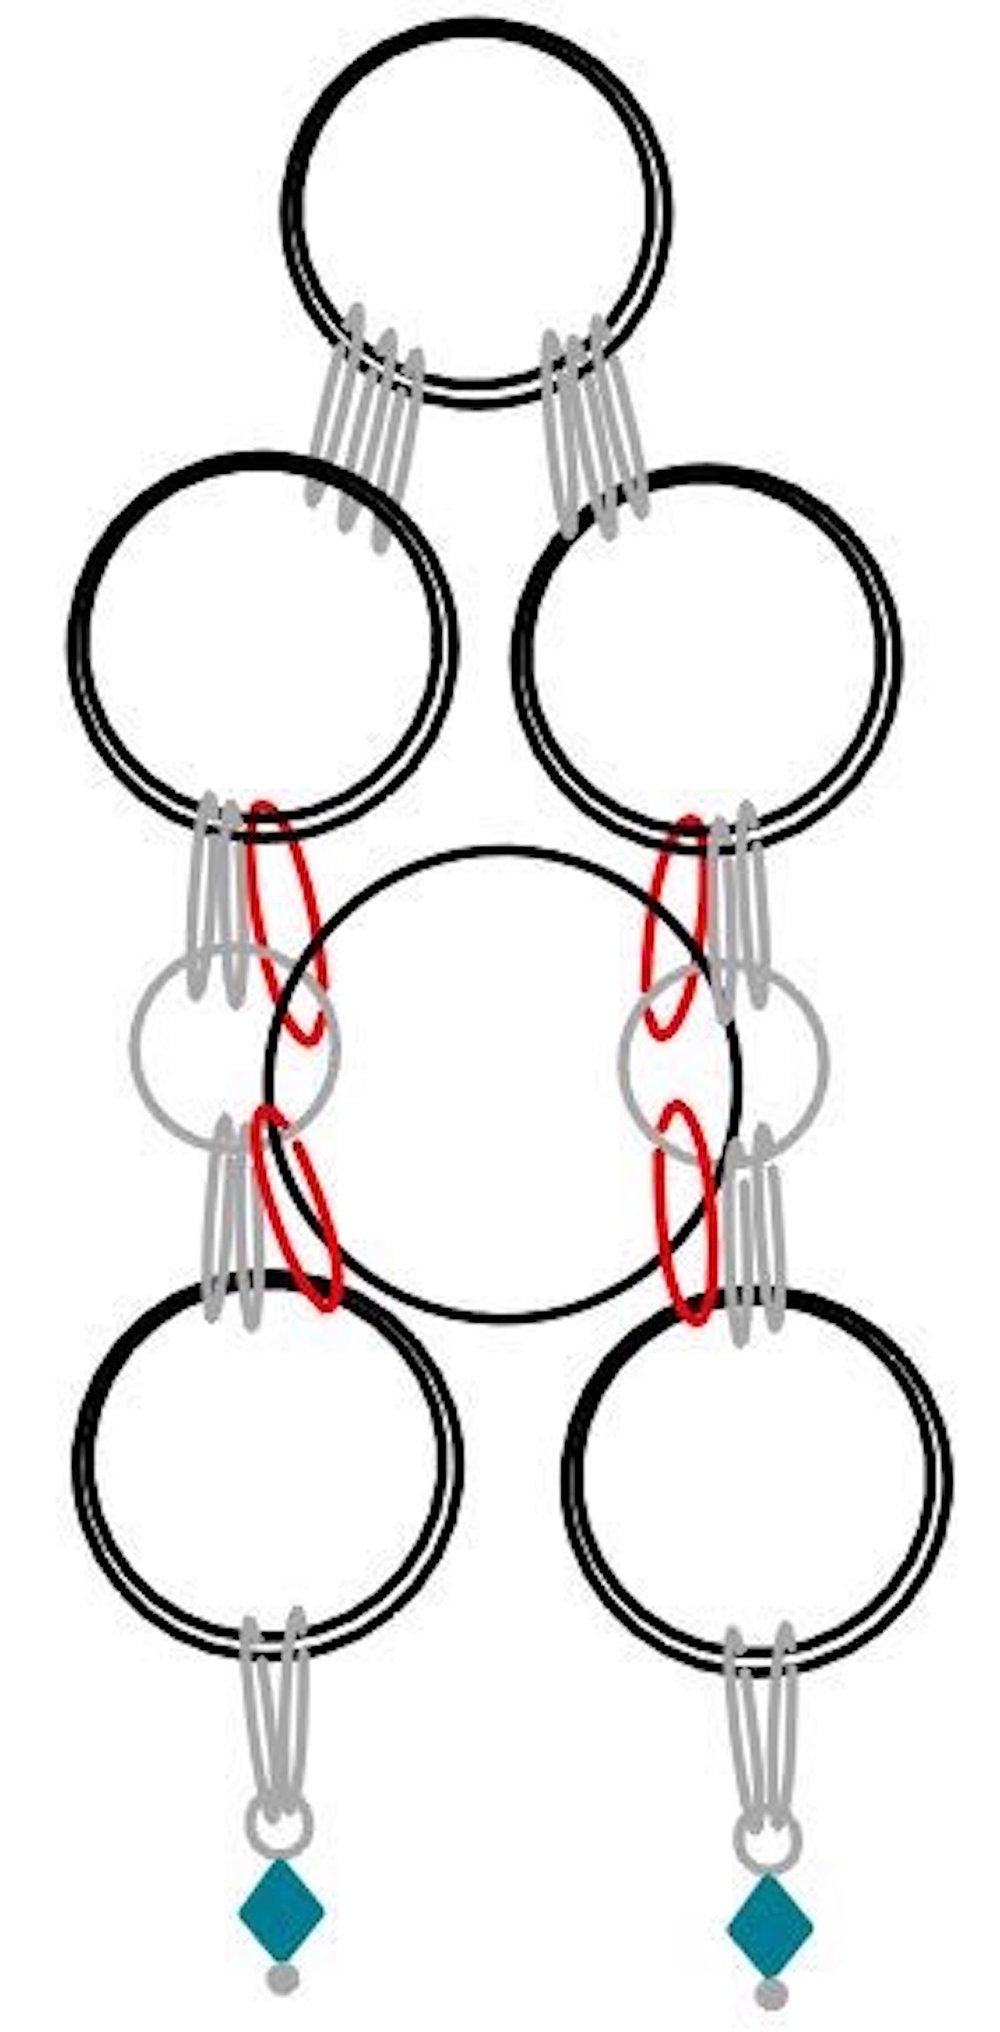 step 8 - Turn the work over.  Slip one large ring through the four small inside rings (shown in red).  Spacing and size are exaggerated here for better viewing.